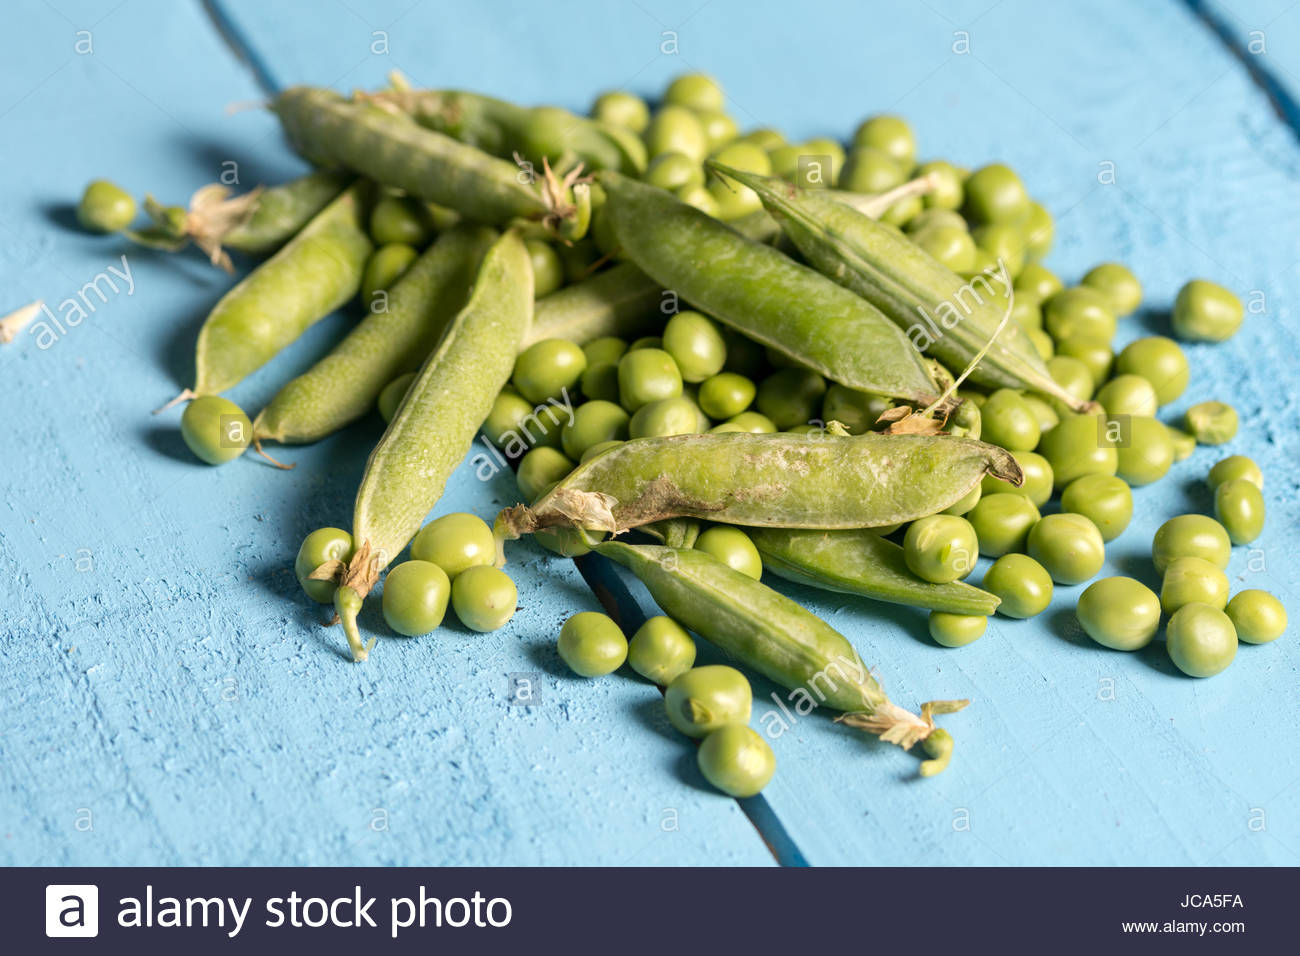 Pile of fresh green peas closeup macro view above. - Stock Image